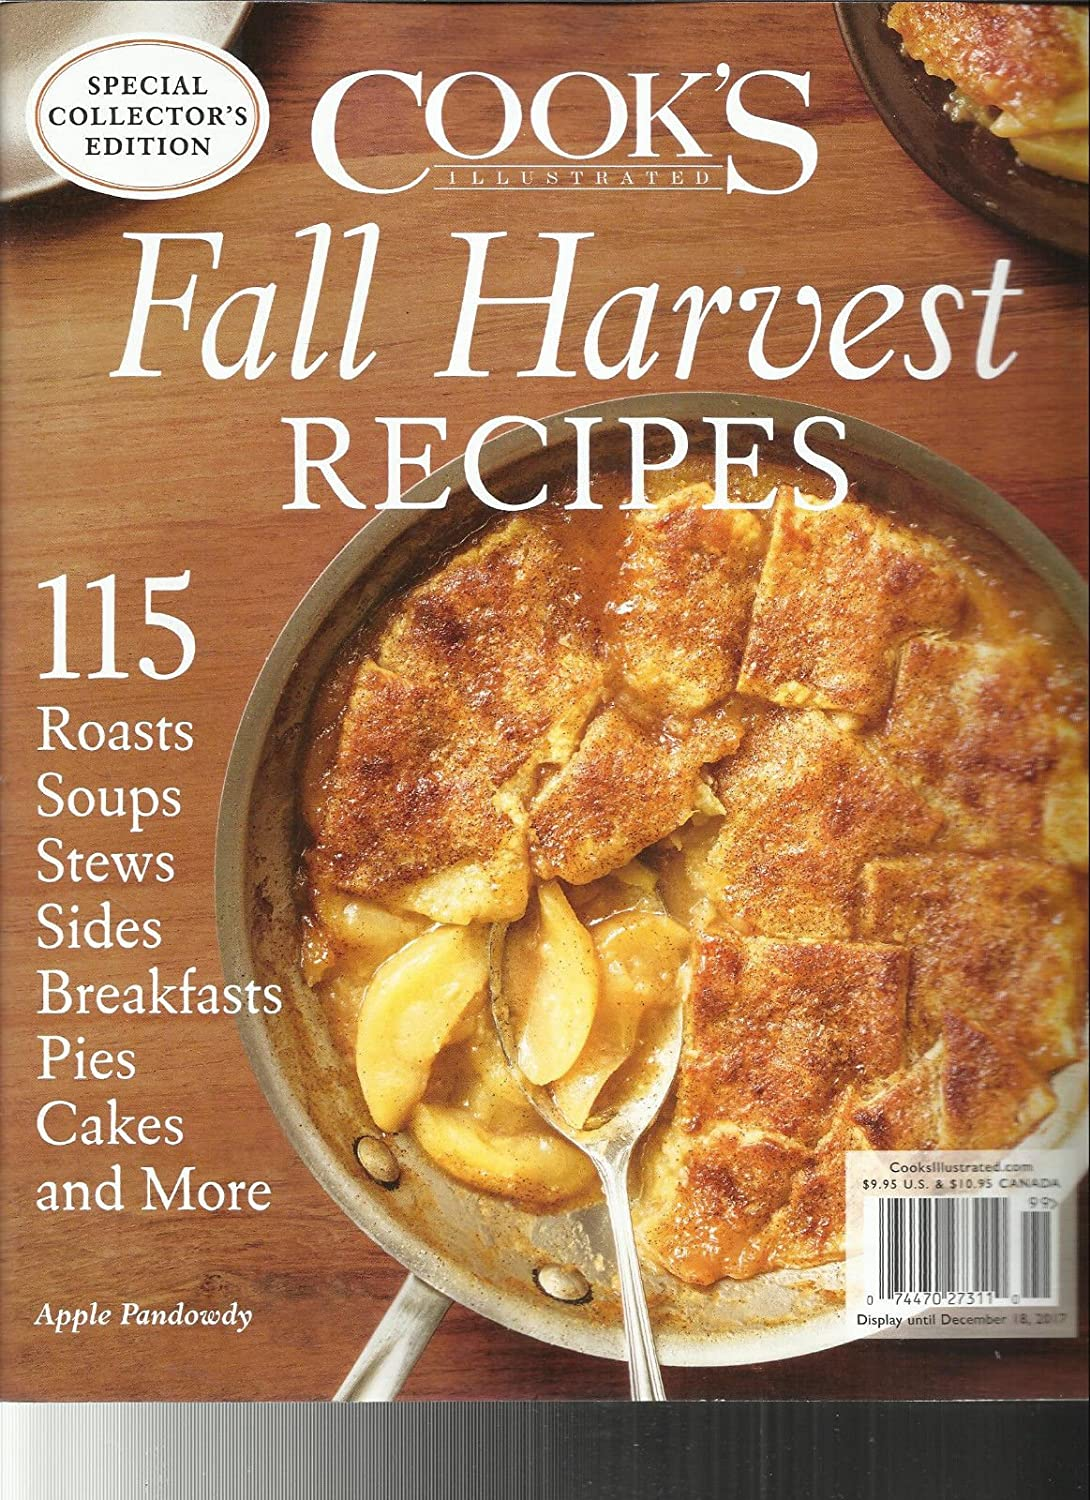 COOK'S ILLUSTRATED MAGAZINE, FALL HARVEST RECIPES SPECIAL COLLECTOR'S EDITION, 2017 s3457